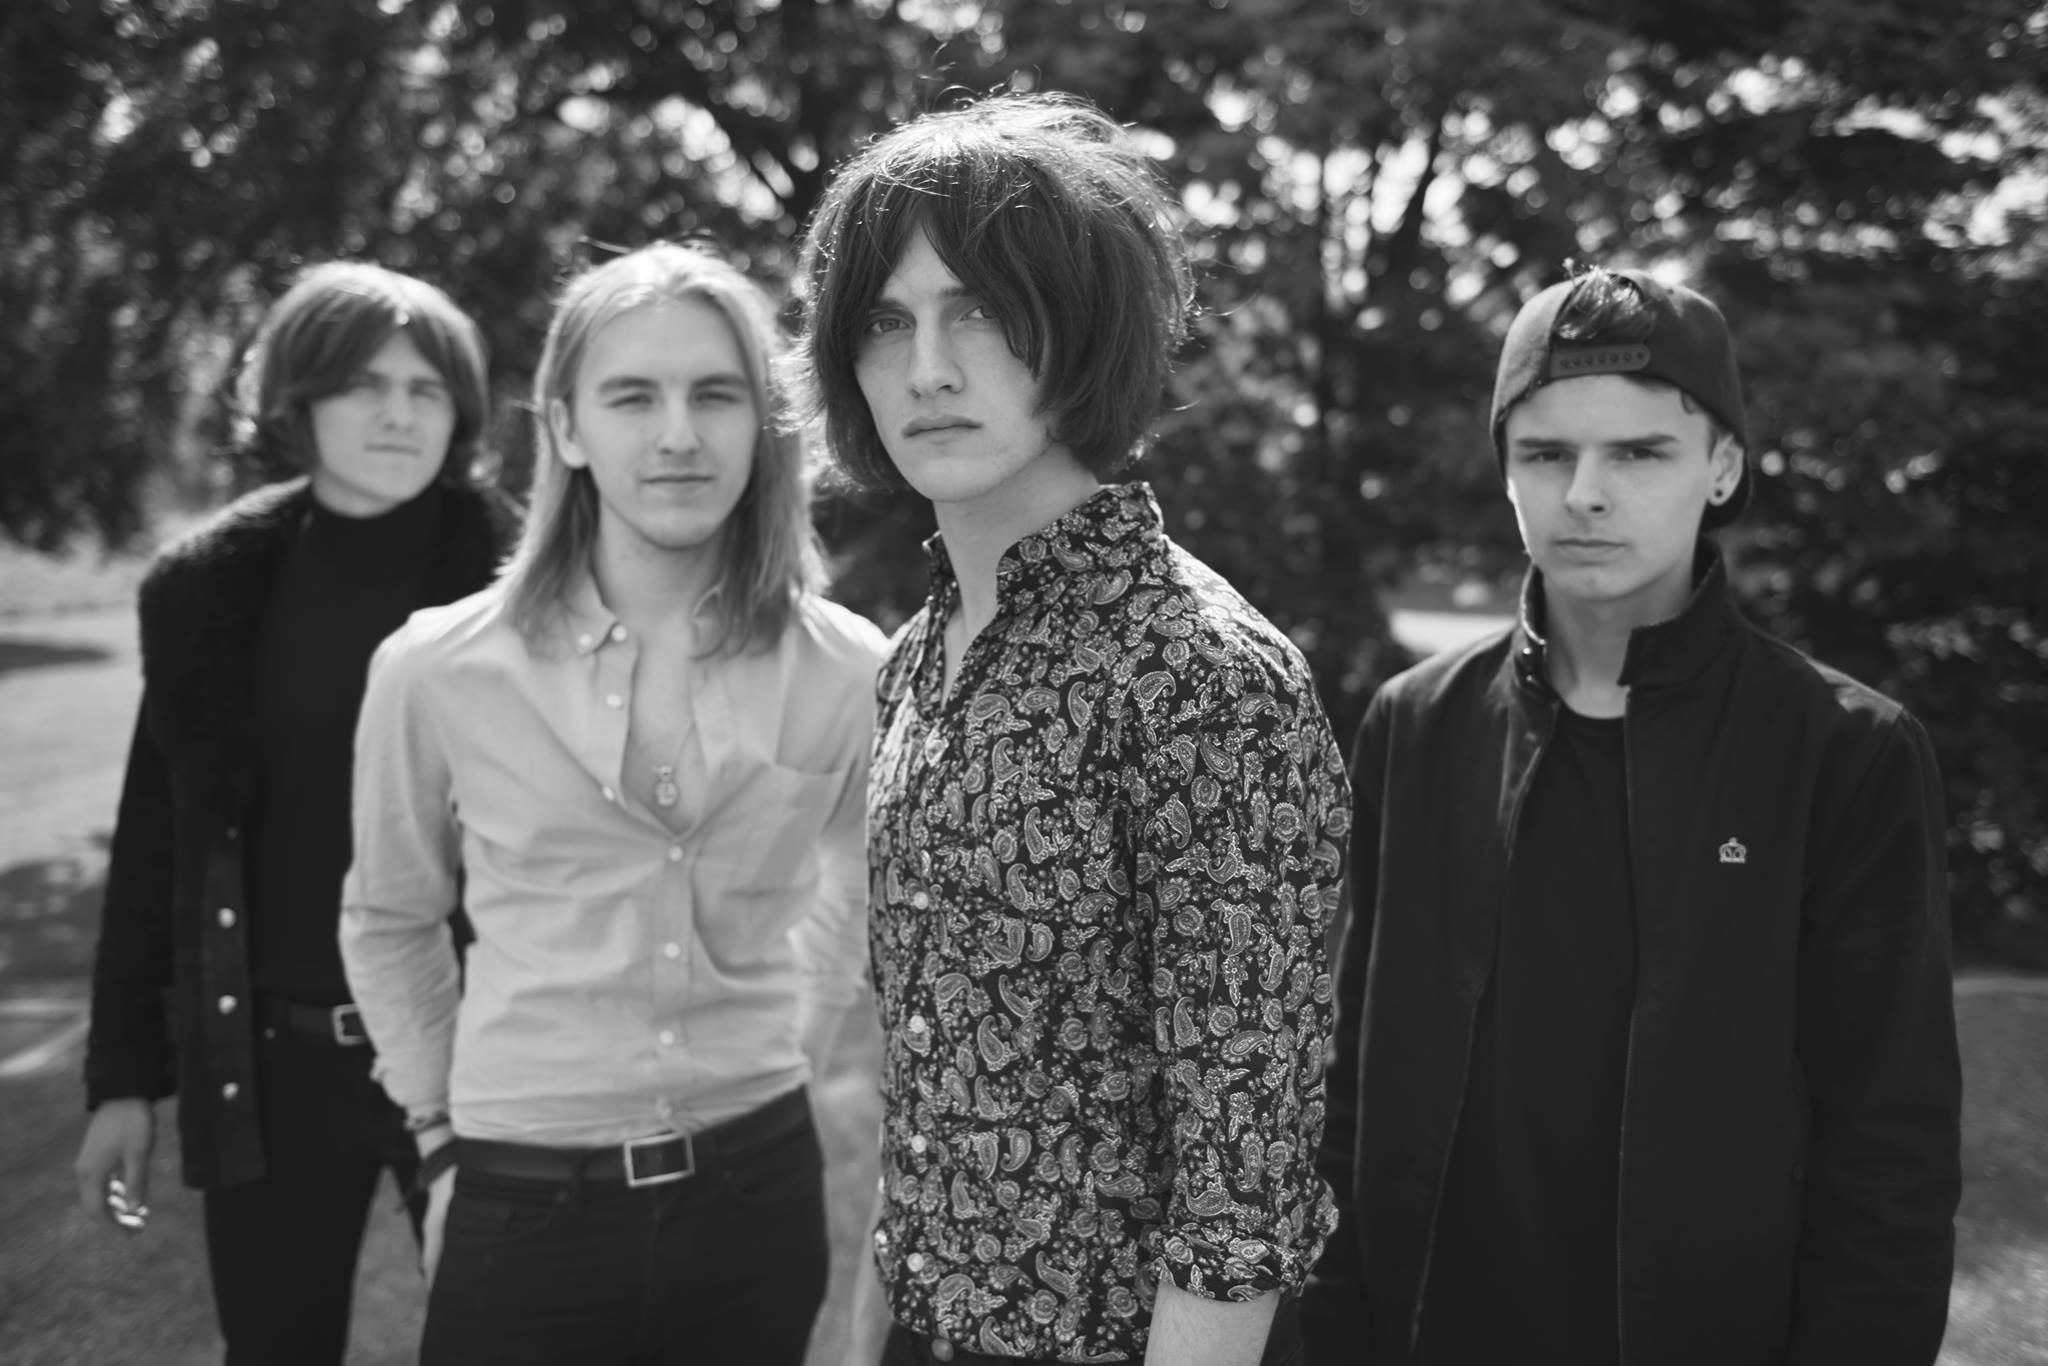 Track Review: Carousel // The Scarletts